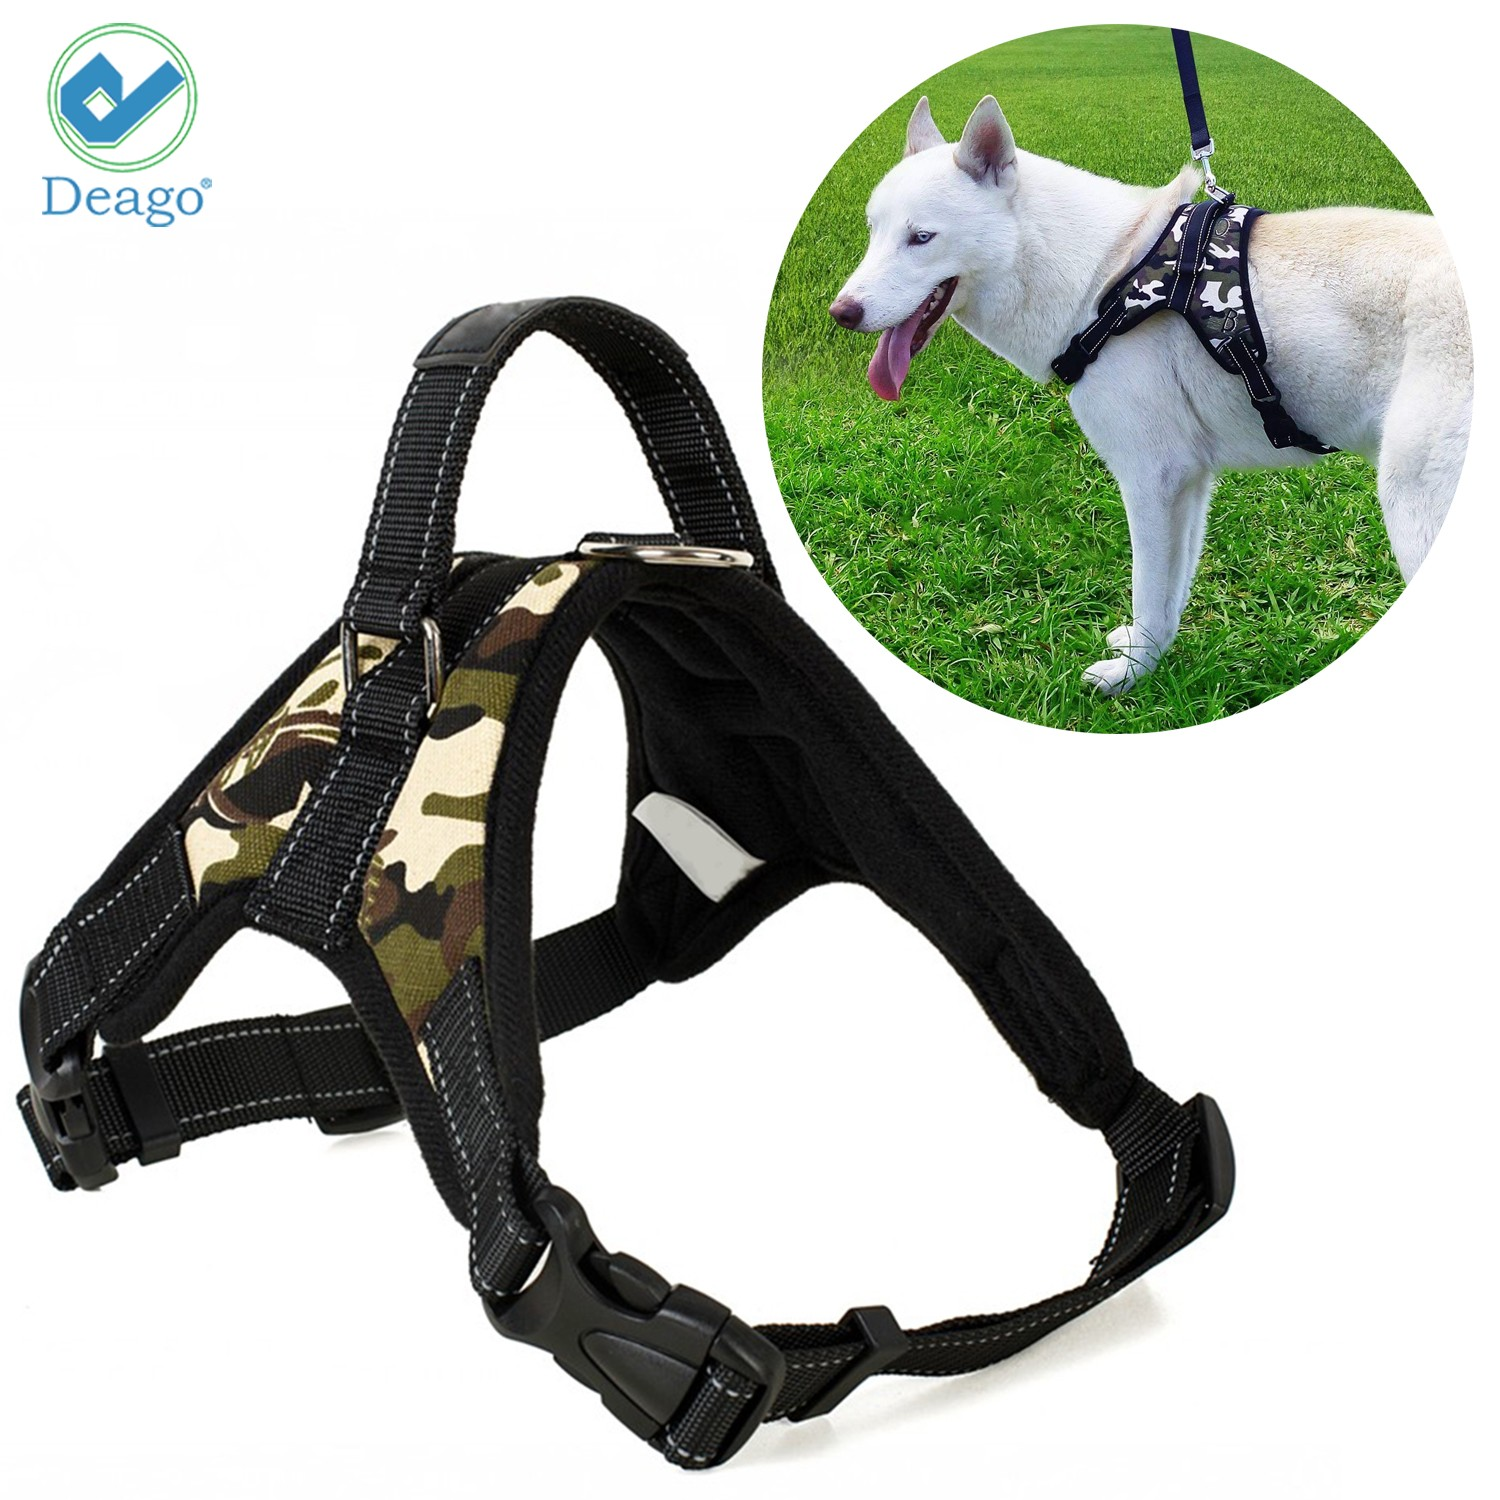 "Deago No Pull Dog Harness Reflective Safety Pet Vest Adjustable Dog Harness With Handle for Small/Medium/Large dogs Outdoor Training Walking Traveling ""Camouflage"" ""Size M"""